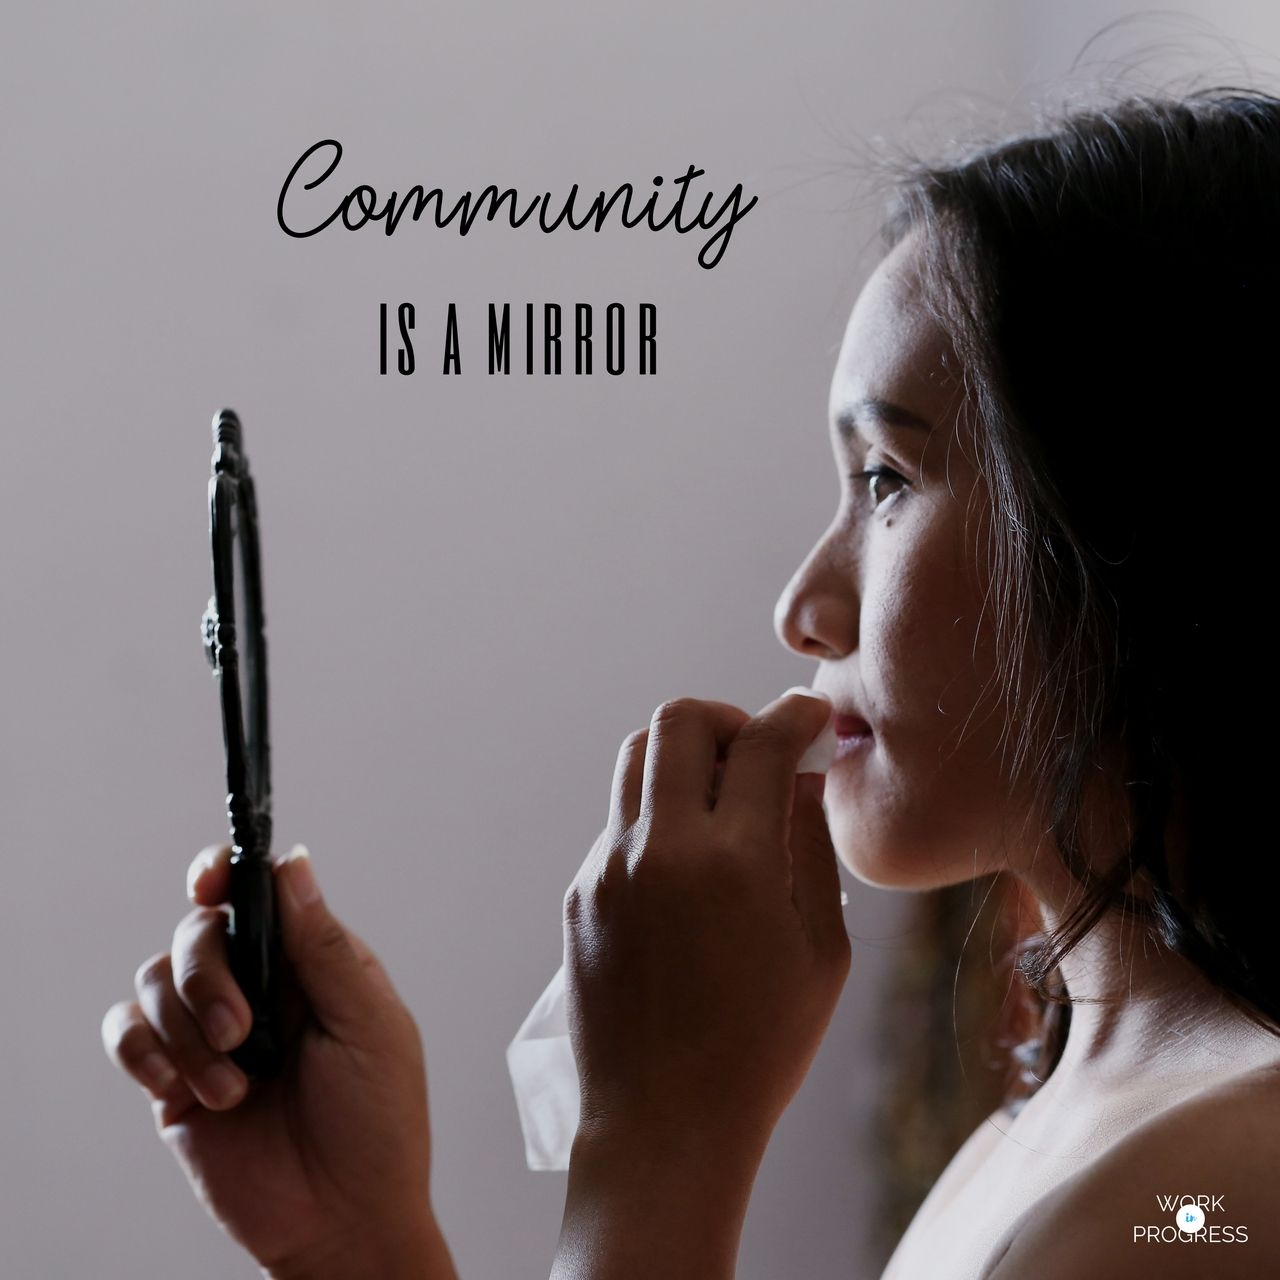 I pray we all experience the community God longs for us to be in and that together, we can share our stories and experience God and people in a way we would never be able to alone. http://workinprogressblog.co/community-is-a-mirror